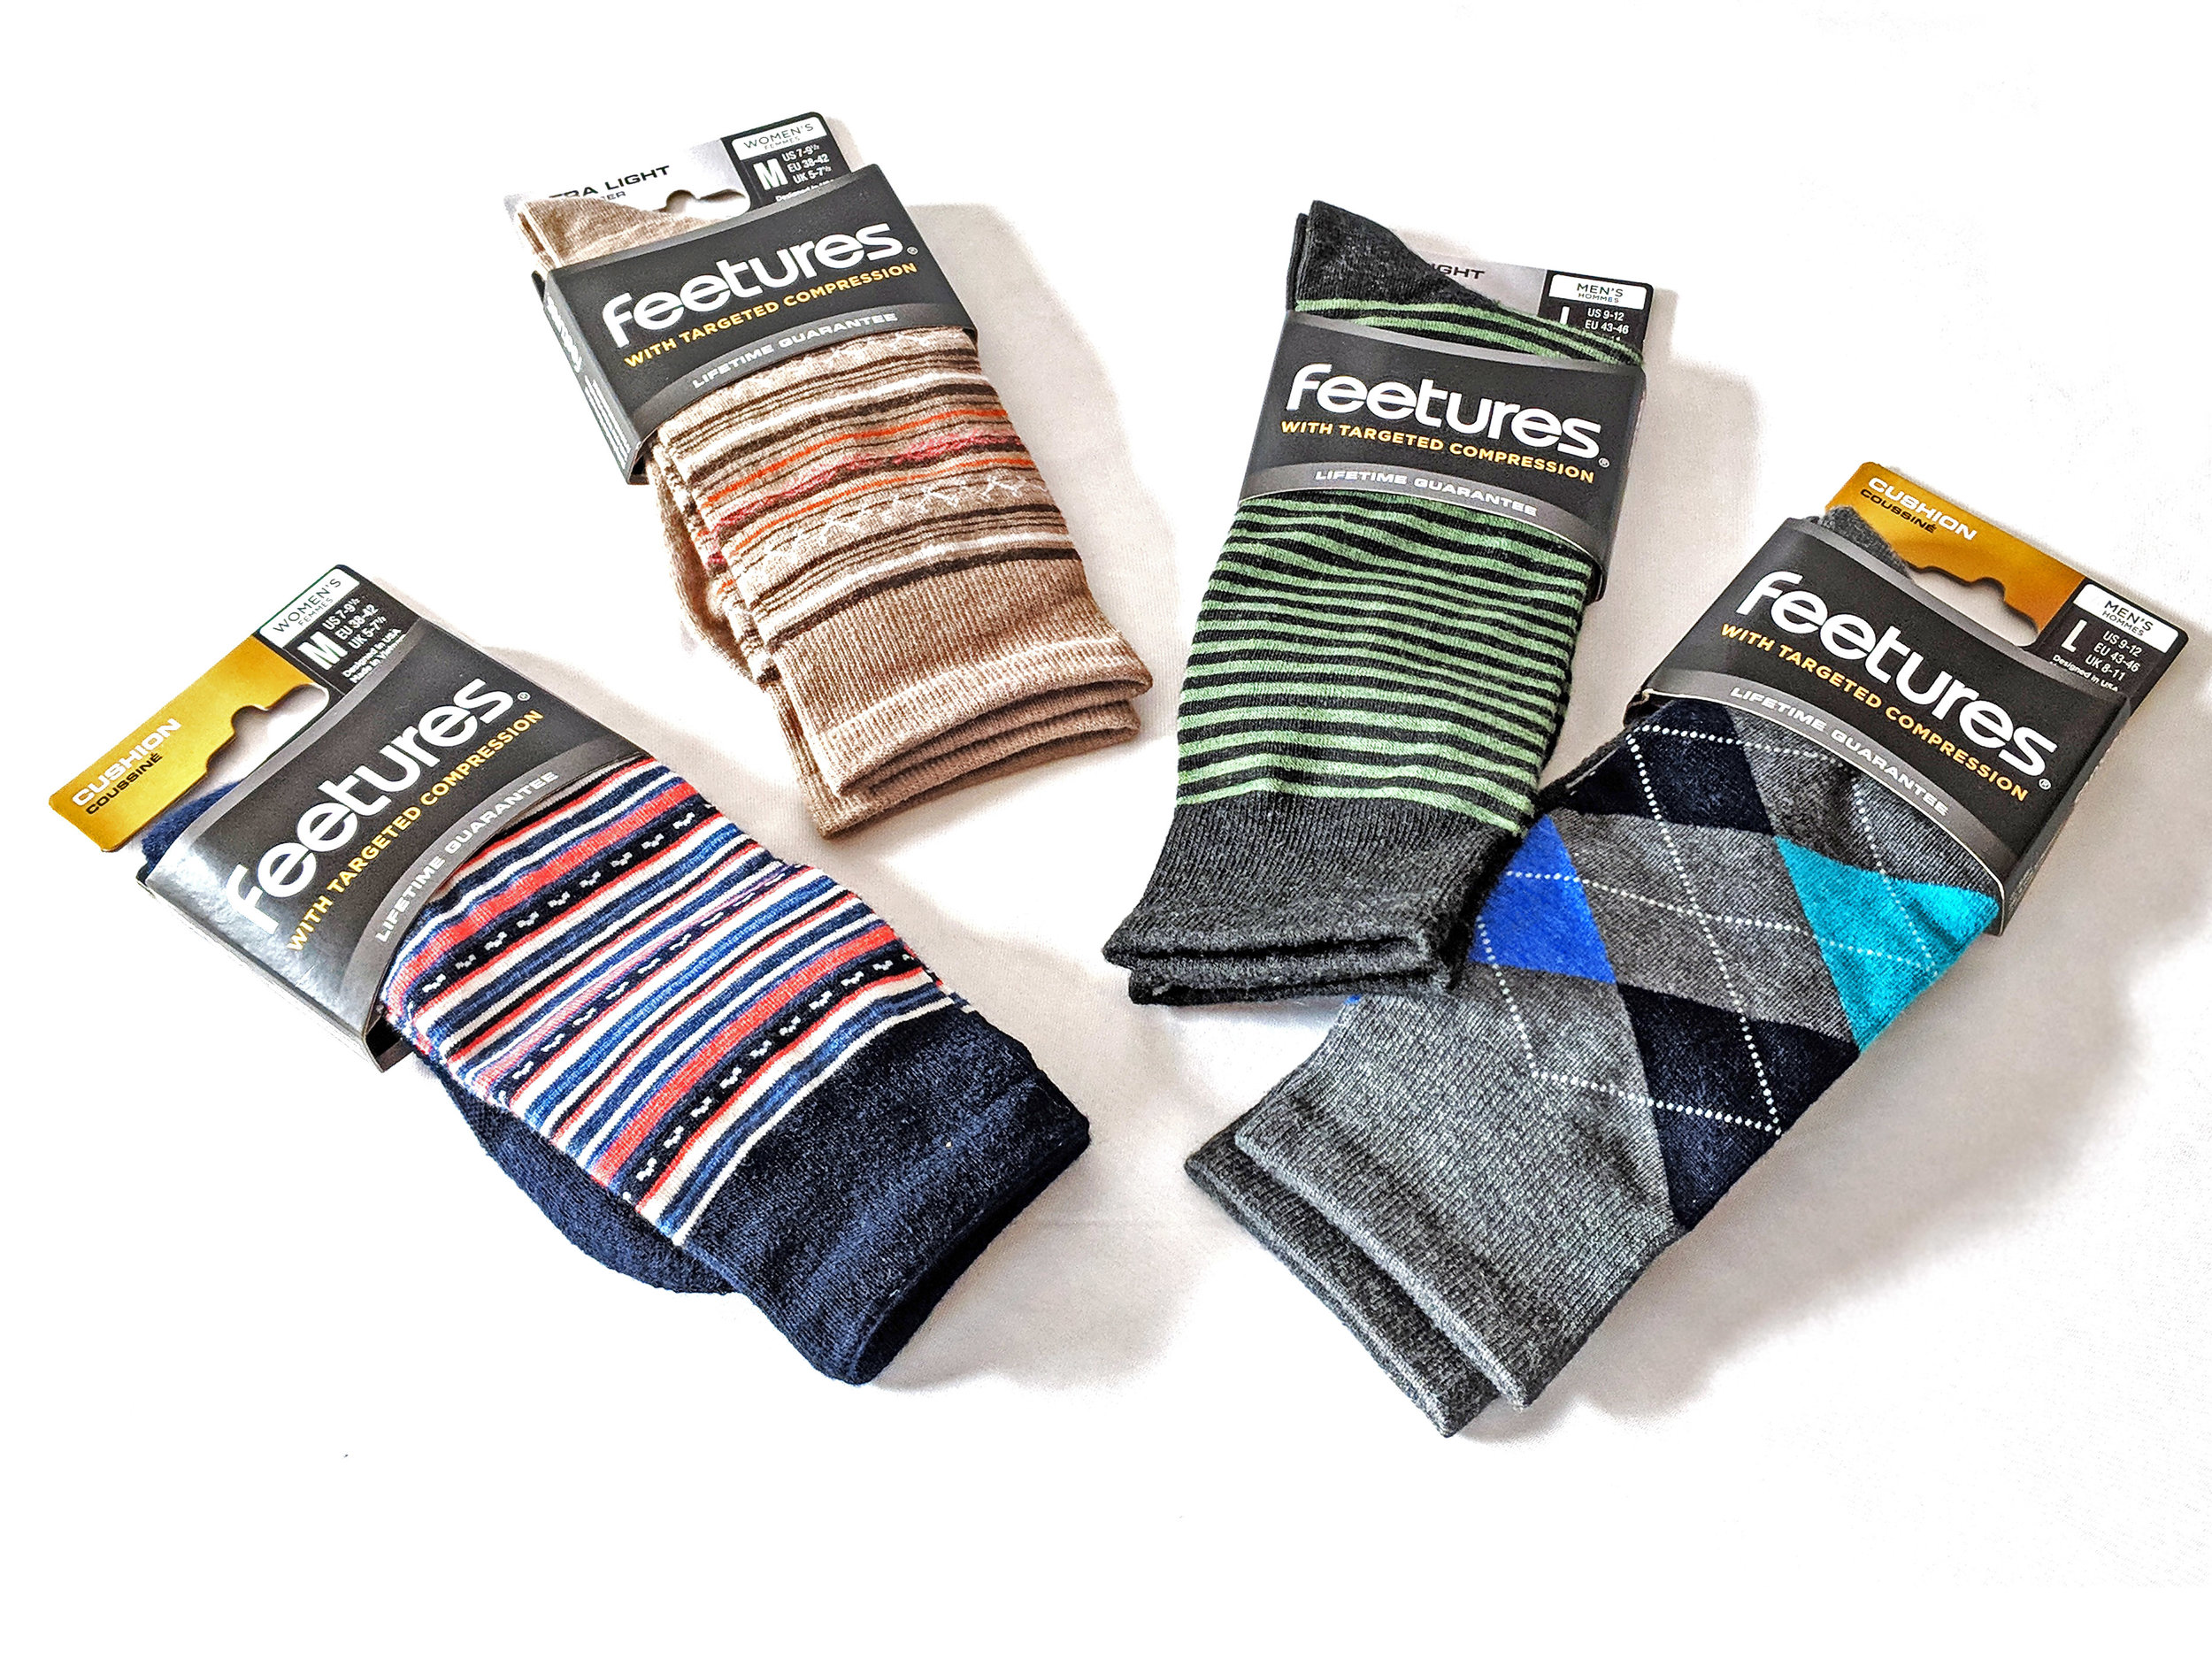 Feetures socks in packaging, highlighting the variety in designs available. Photo Credit: The Sock Review